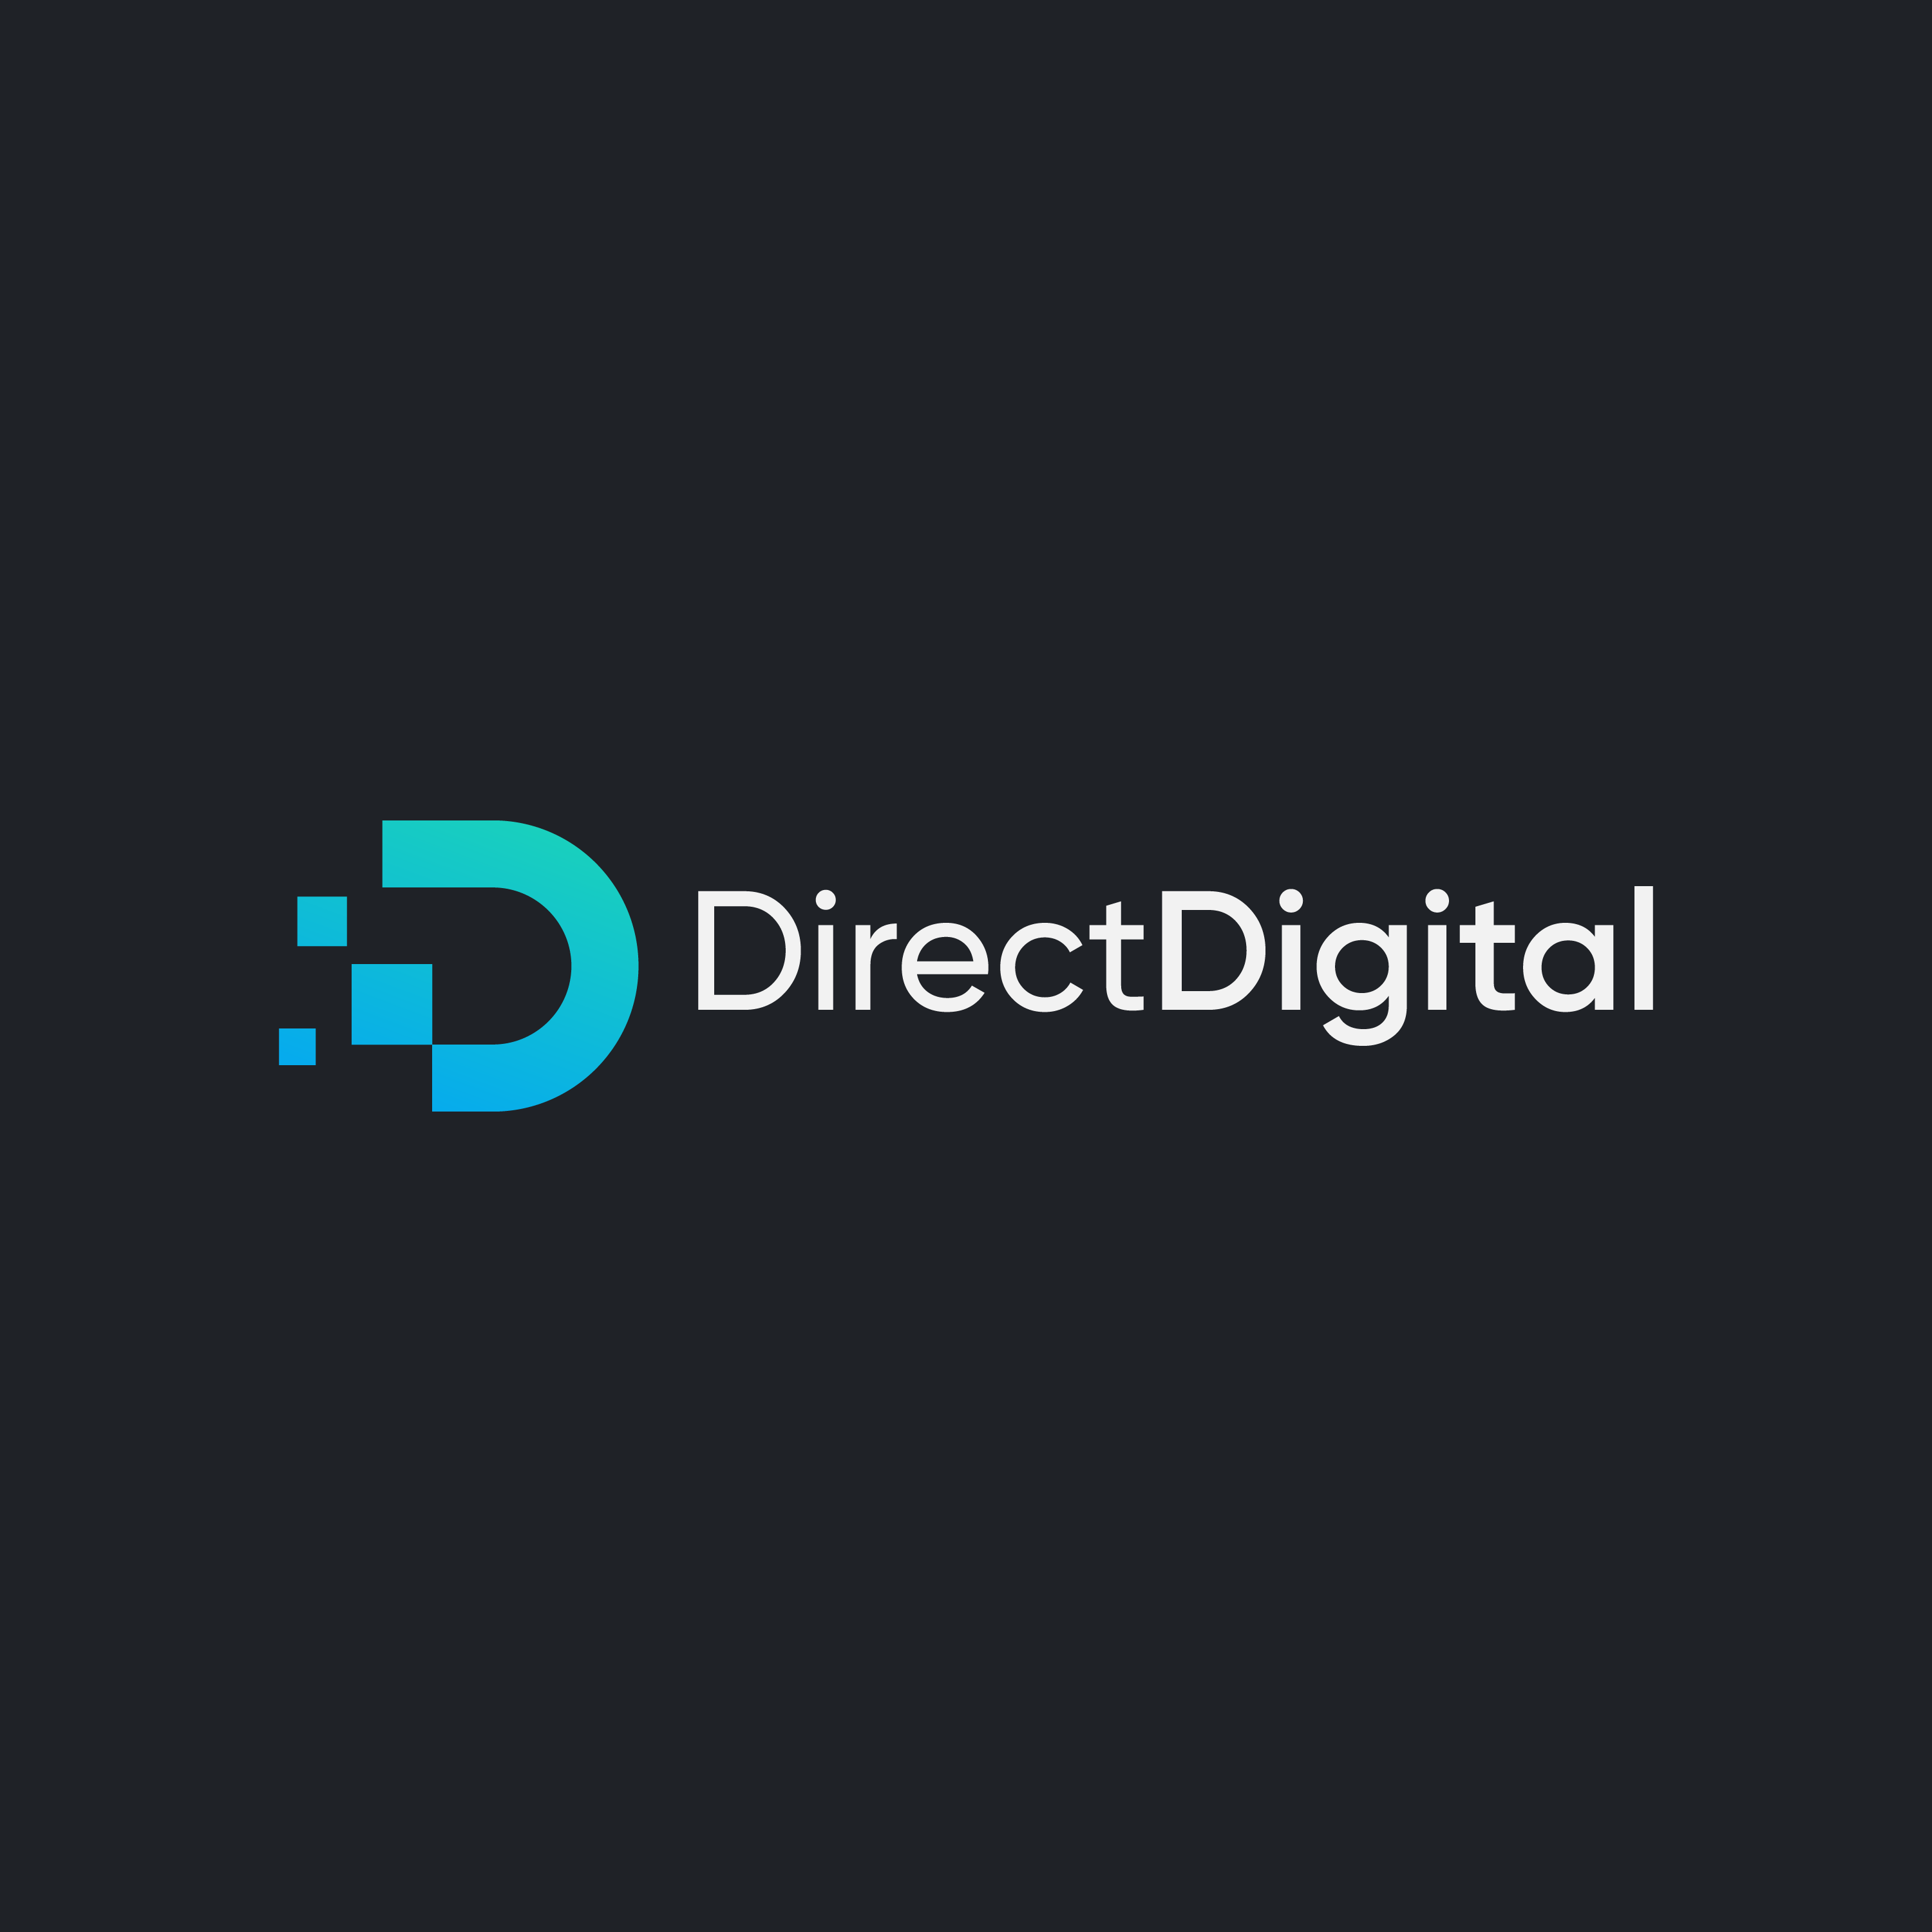 Professional and bold tech logo for new precision ad targeting agency